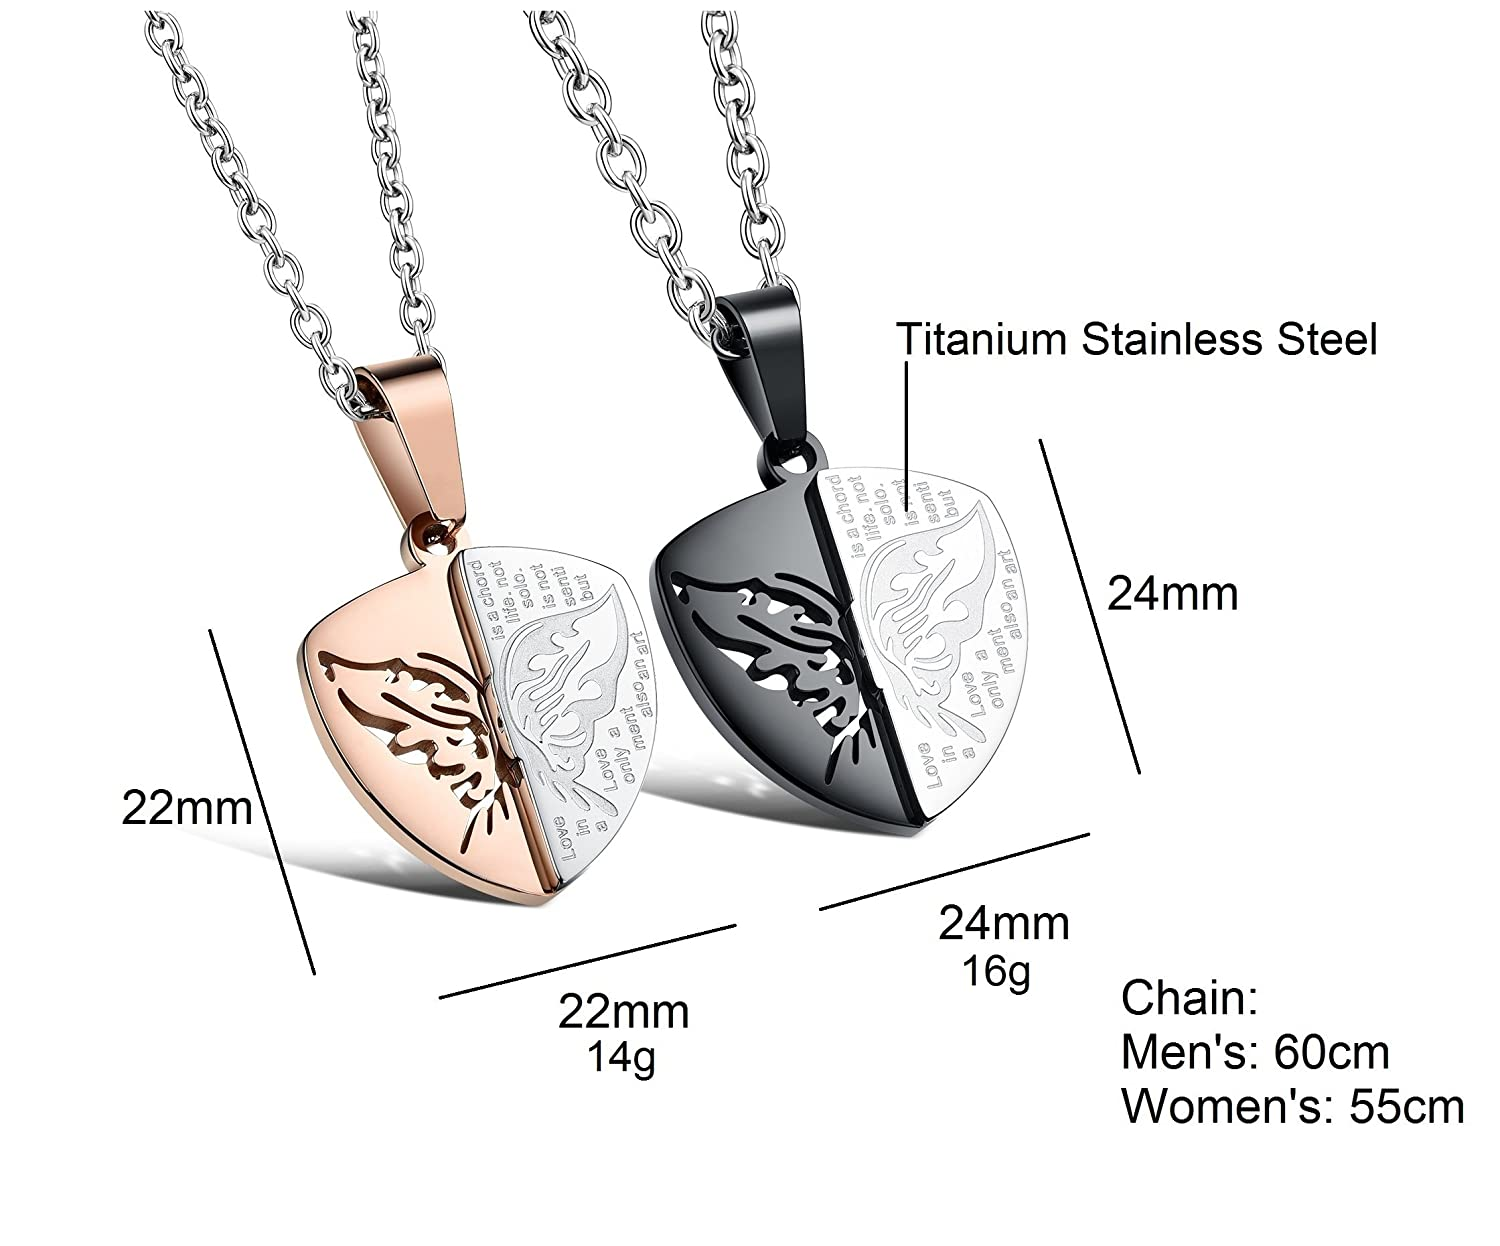 Amazing Titanium Stainless Steel You Are My Shield Protecting Me Couple Pendant Necklace Matching Set